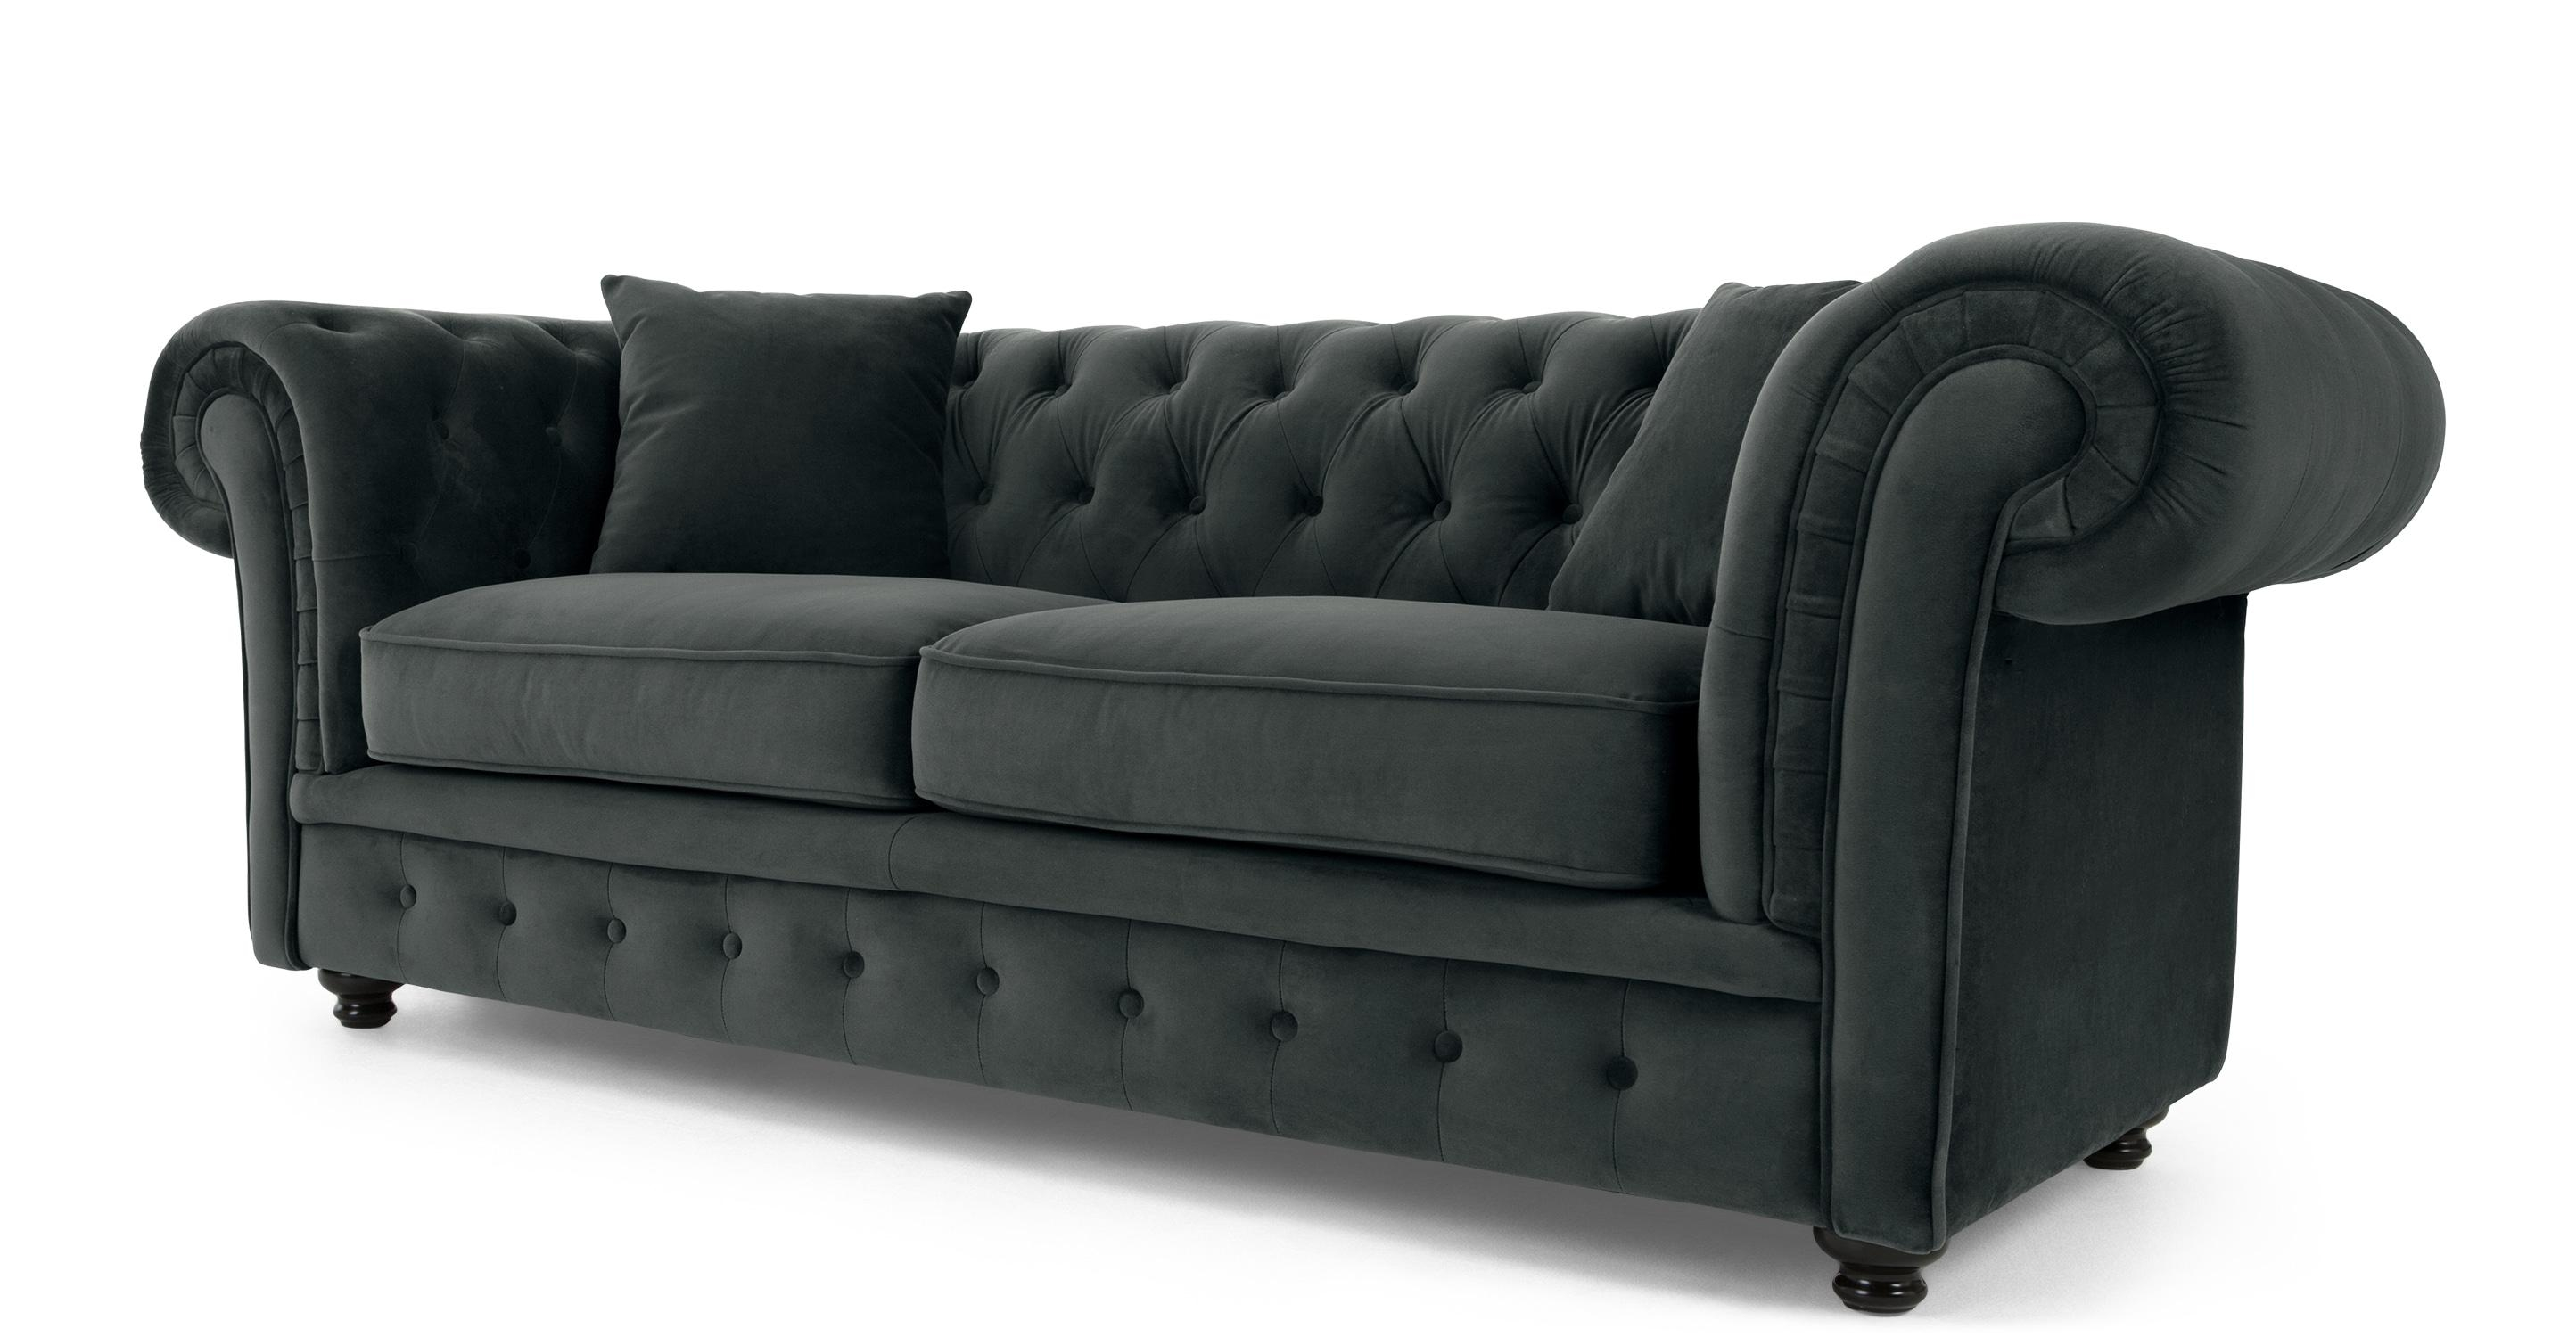 Sofas : Fabulous Grey Tufted Sofa Blue Grey Sofa Leather Couches With Blue Tufted Sofas (Image 16 of 22)